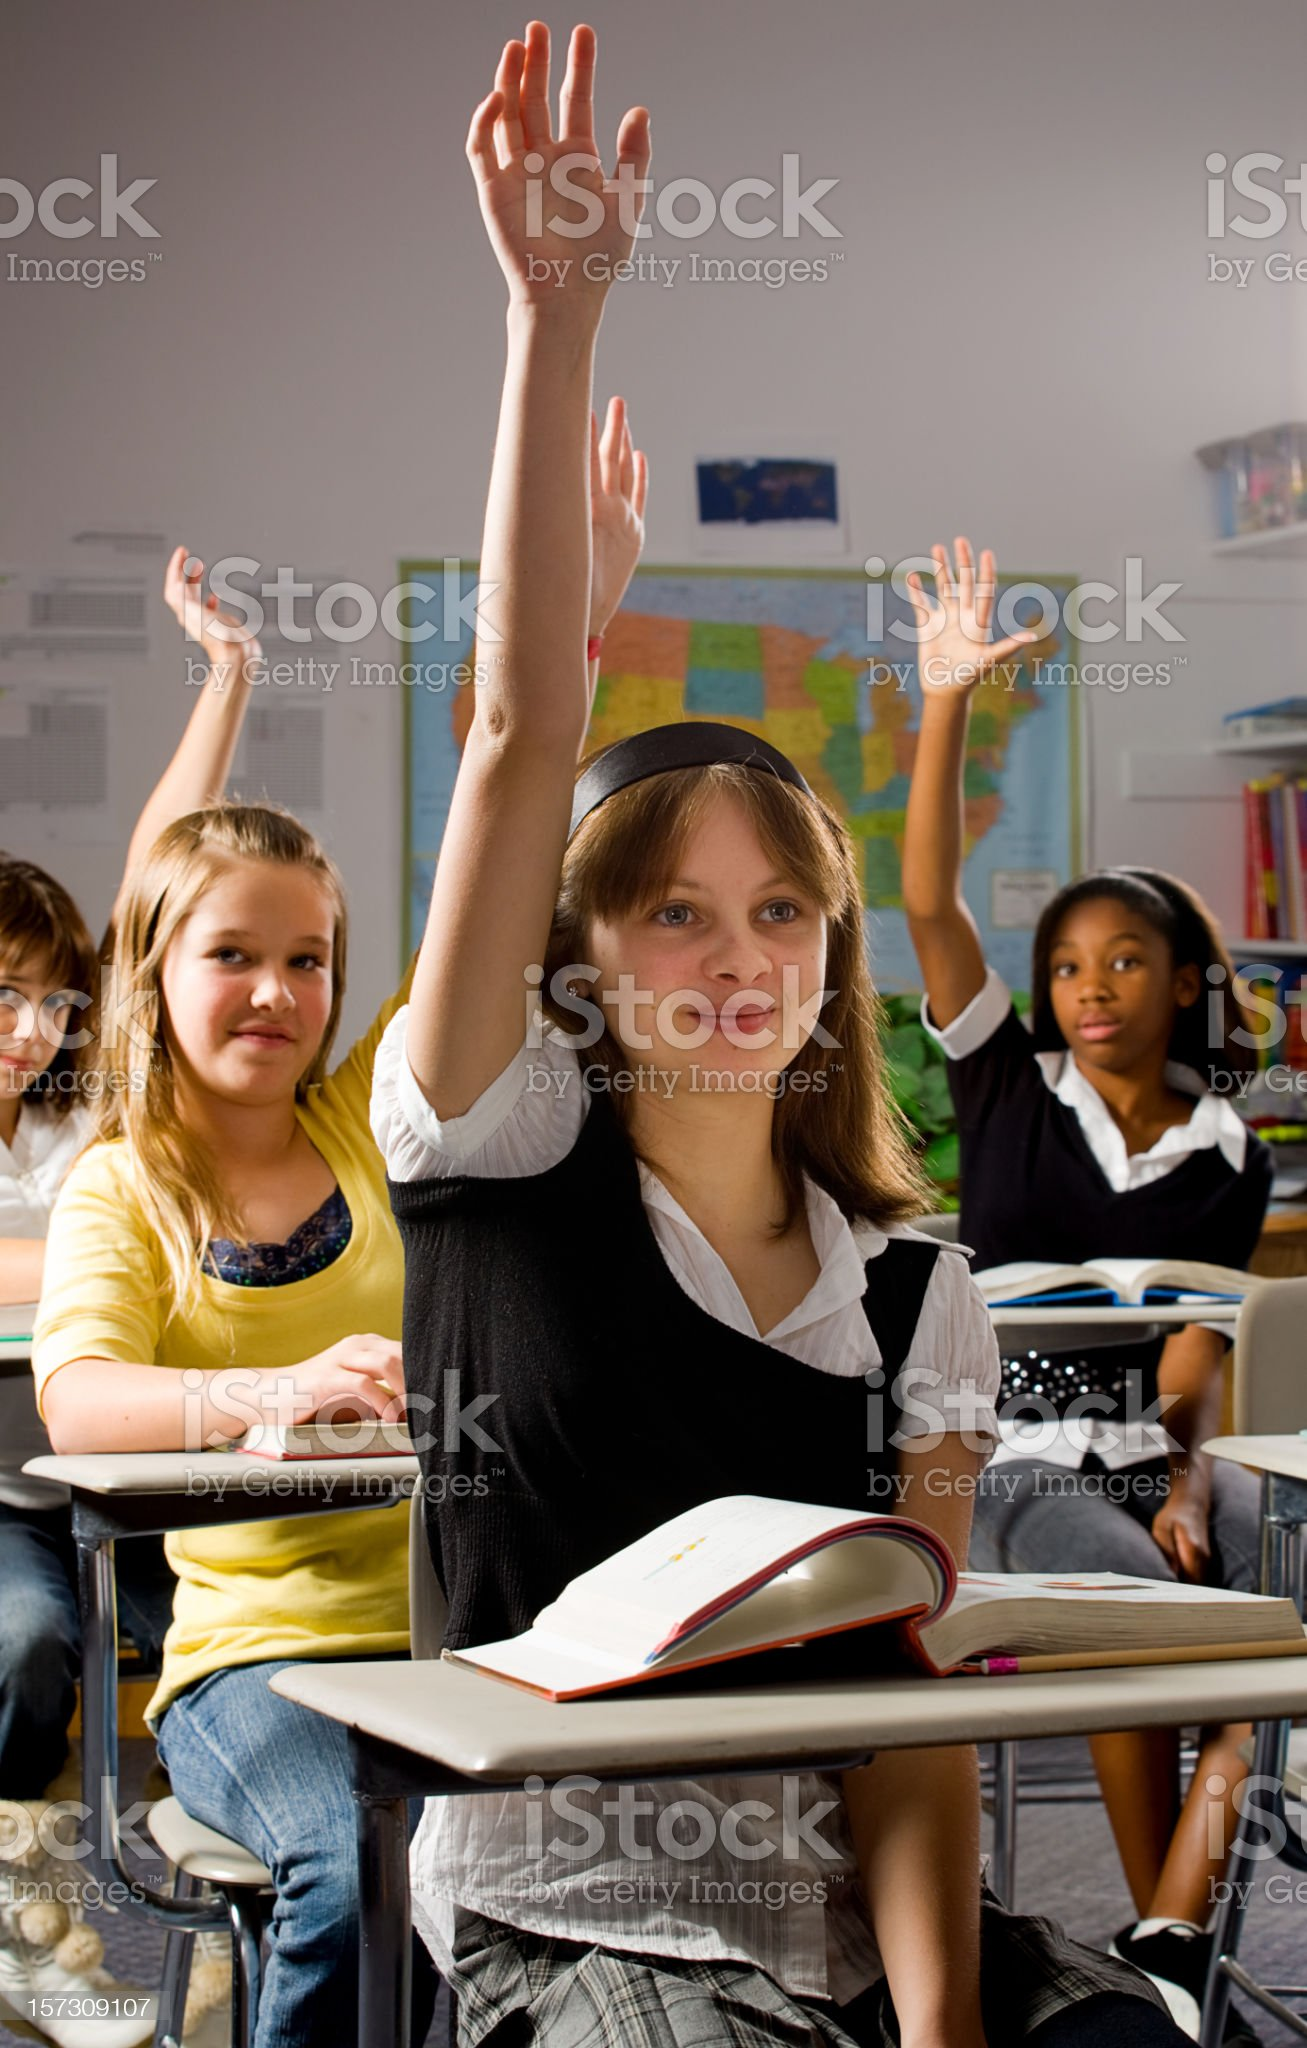 Classroom Series royalty-free stock photo